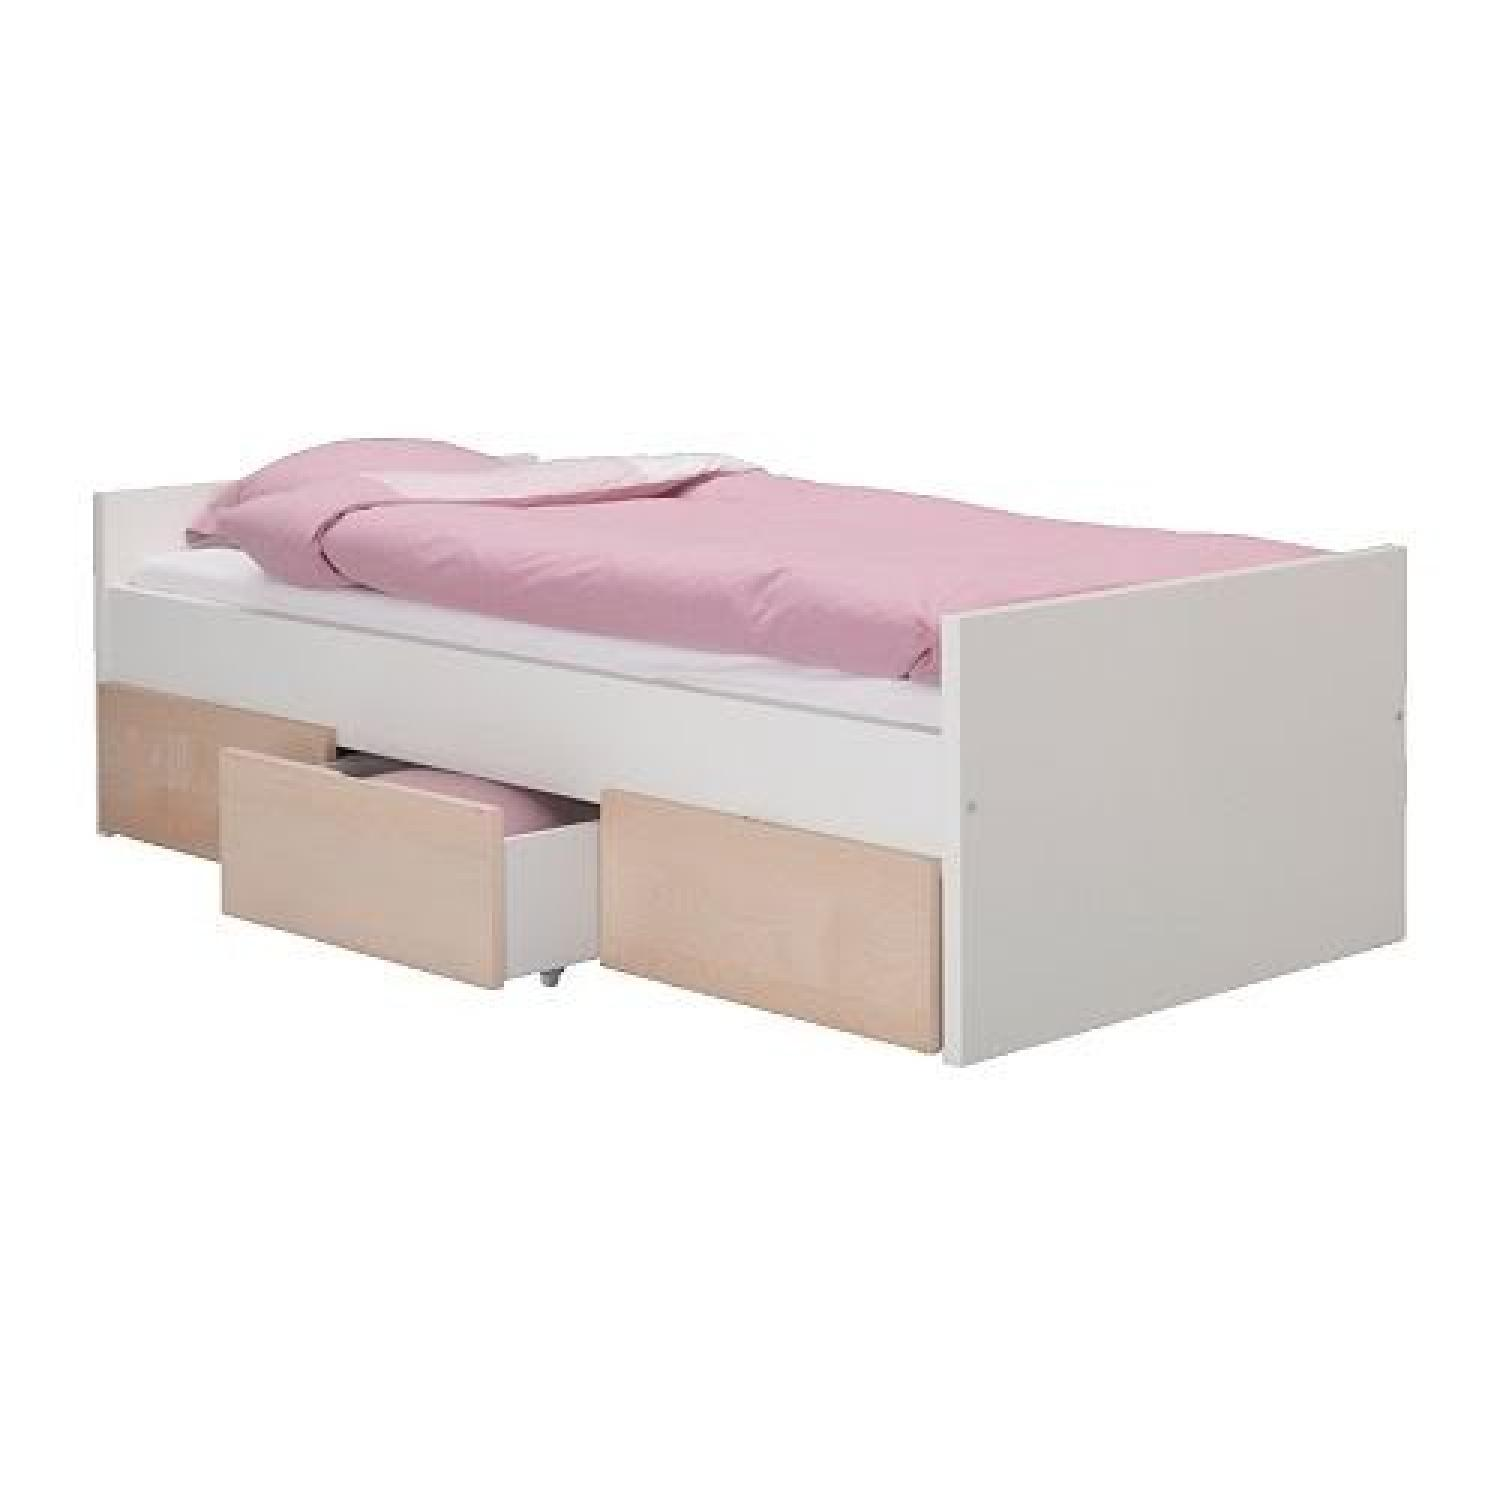 Ikea Brekke Twin Bed w/ 3 Drawers